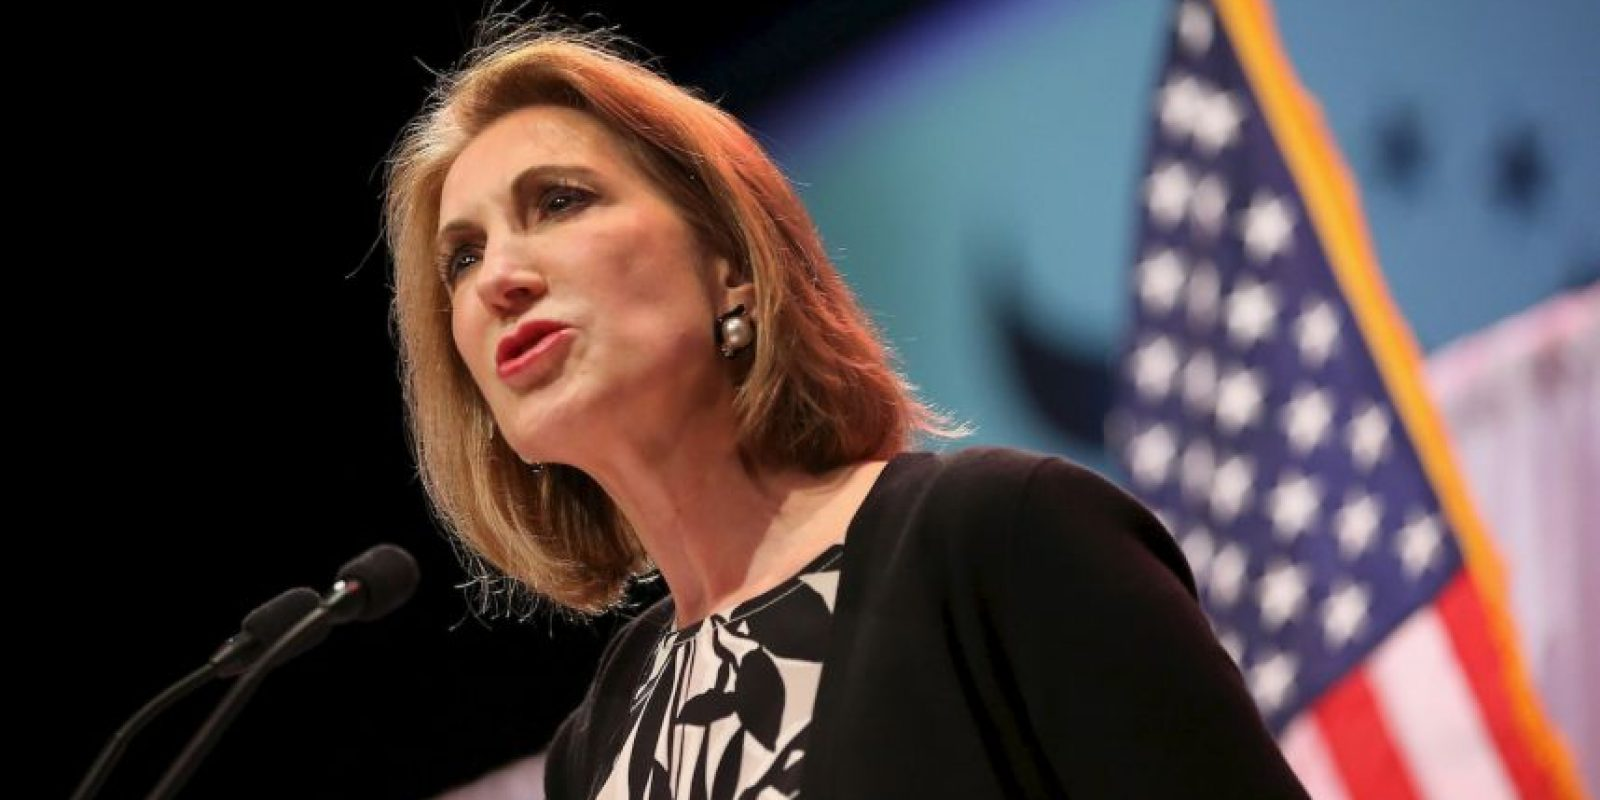 4. Carly Fiorina Foto: Getty Images